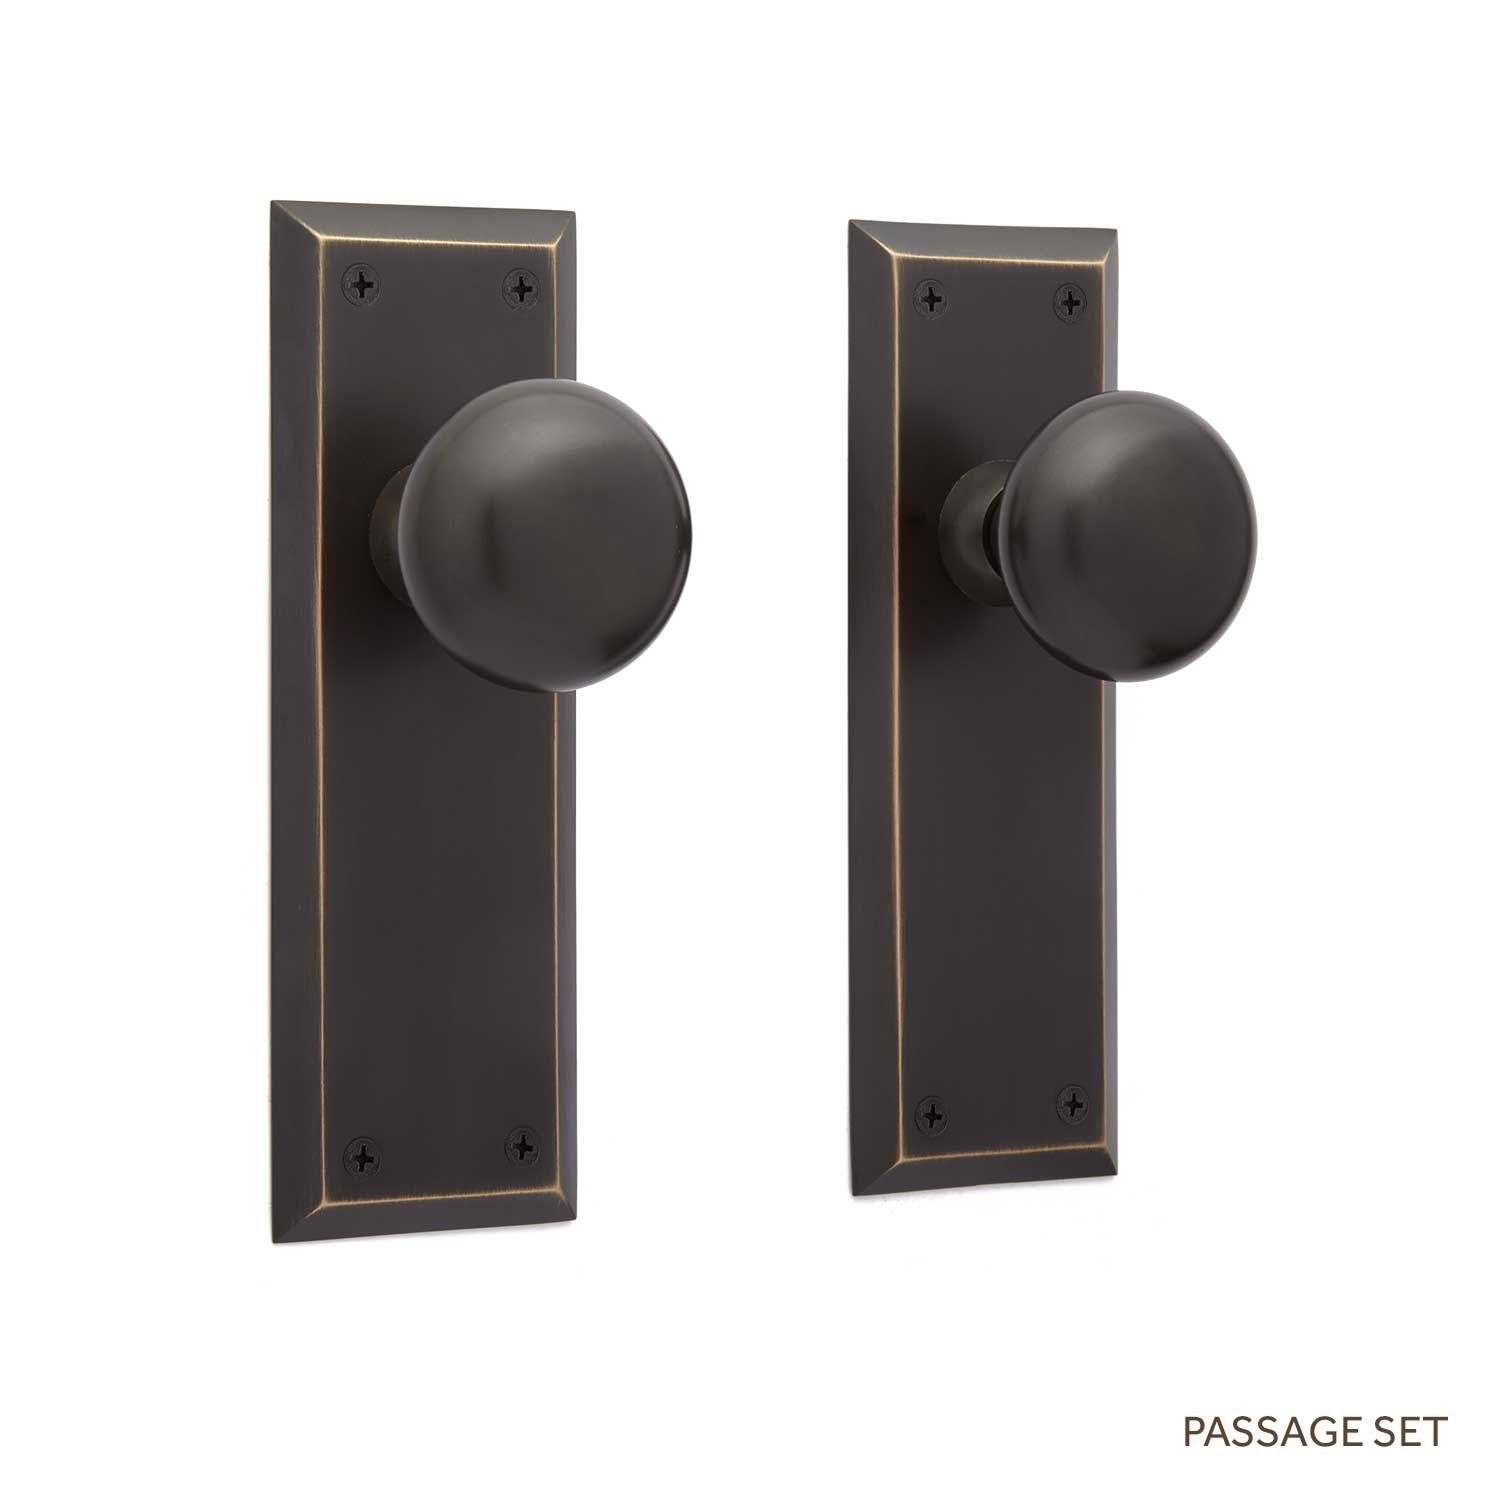 hardware door schlage crystal glass suppliers front commercial knobs handlesets interior handles shower